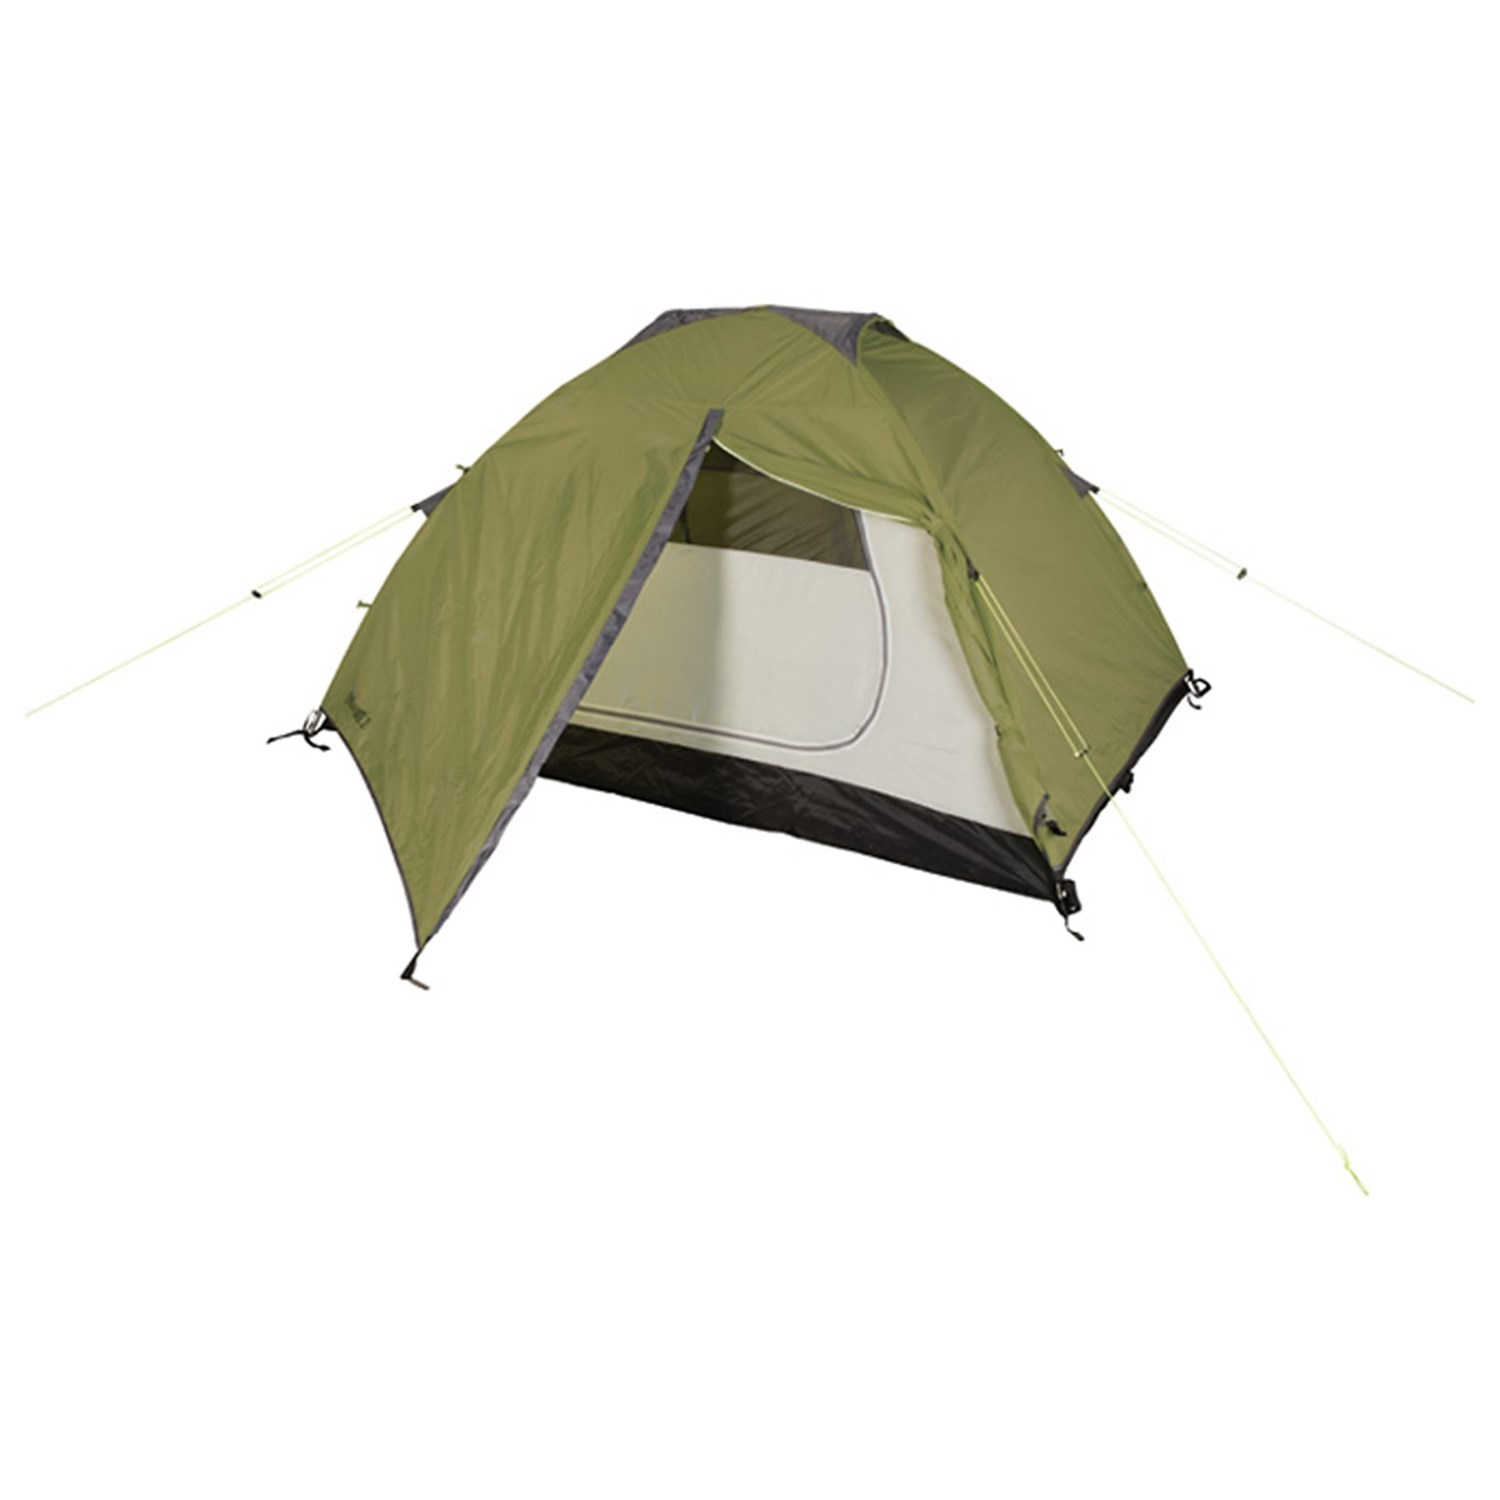 Peregrine Endurance 2 Tent with Footprint - 2-Person 4-Season  sc 1 st  Sierra Trading Post & Peregrine Endurance 2 Tent with Footprint - 2-Person 4-Season ...